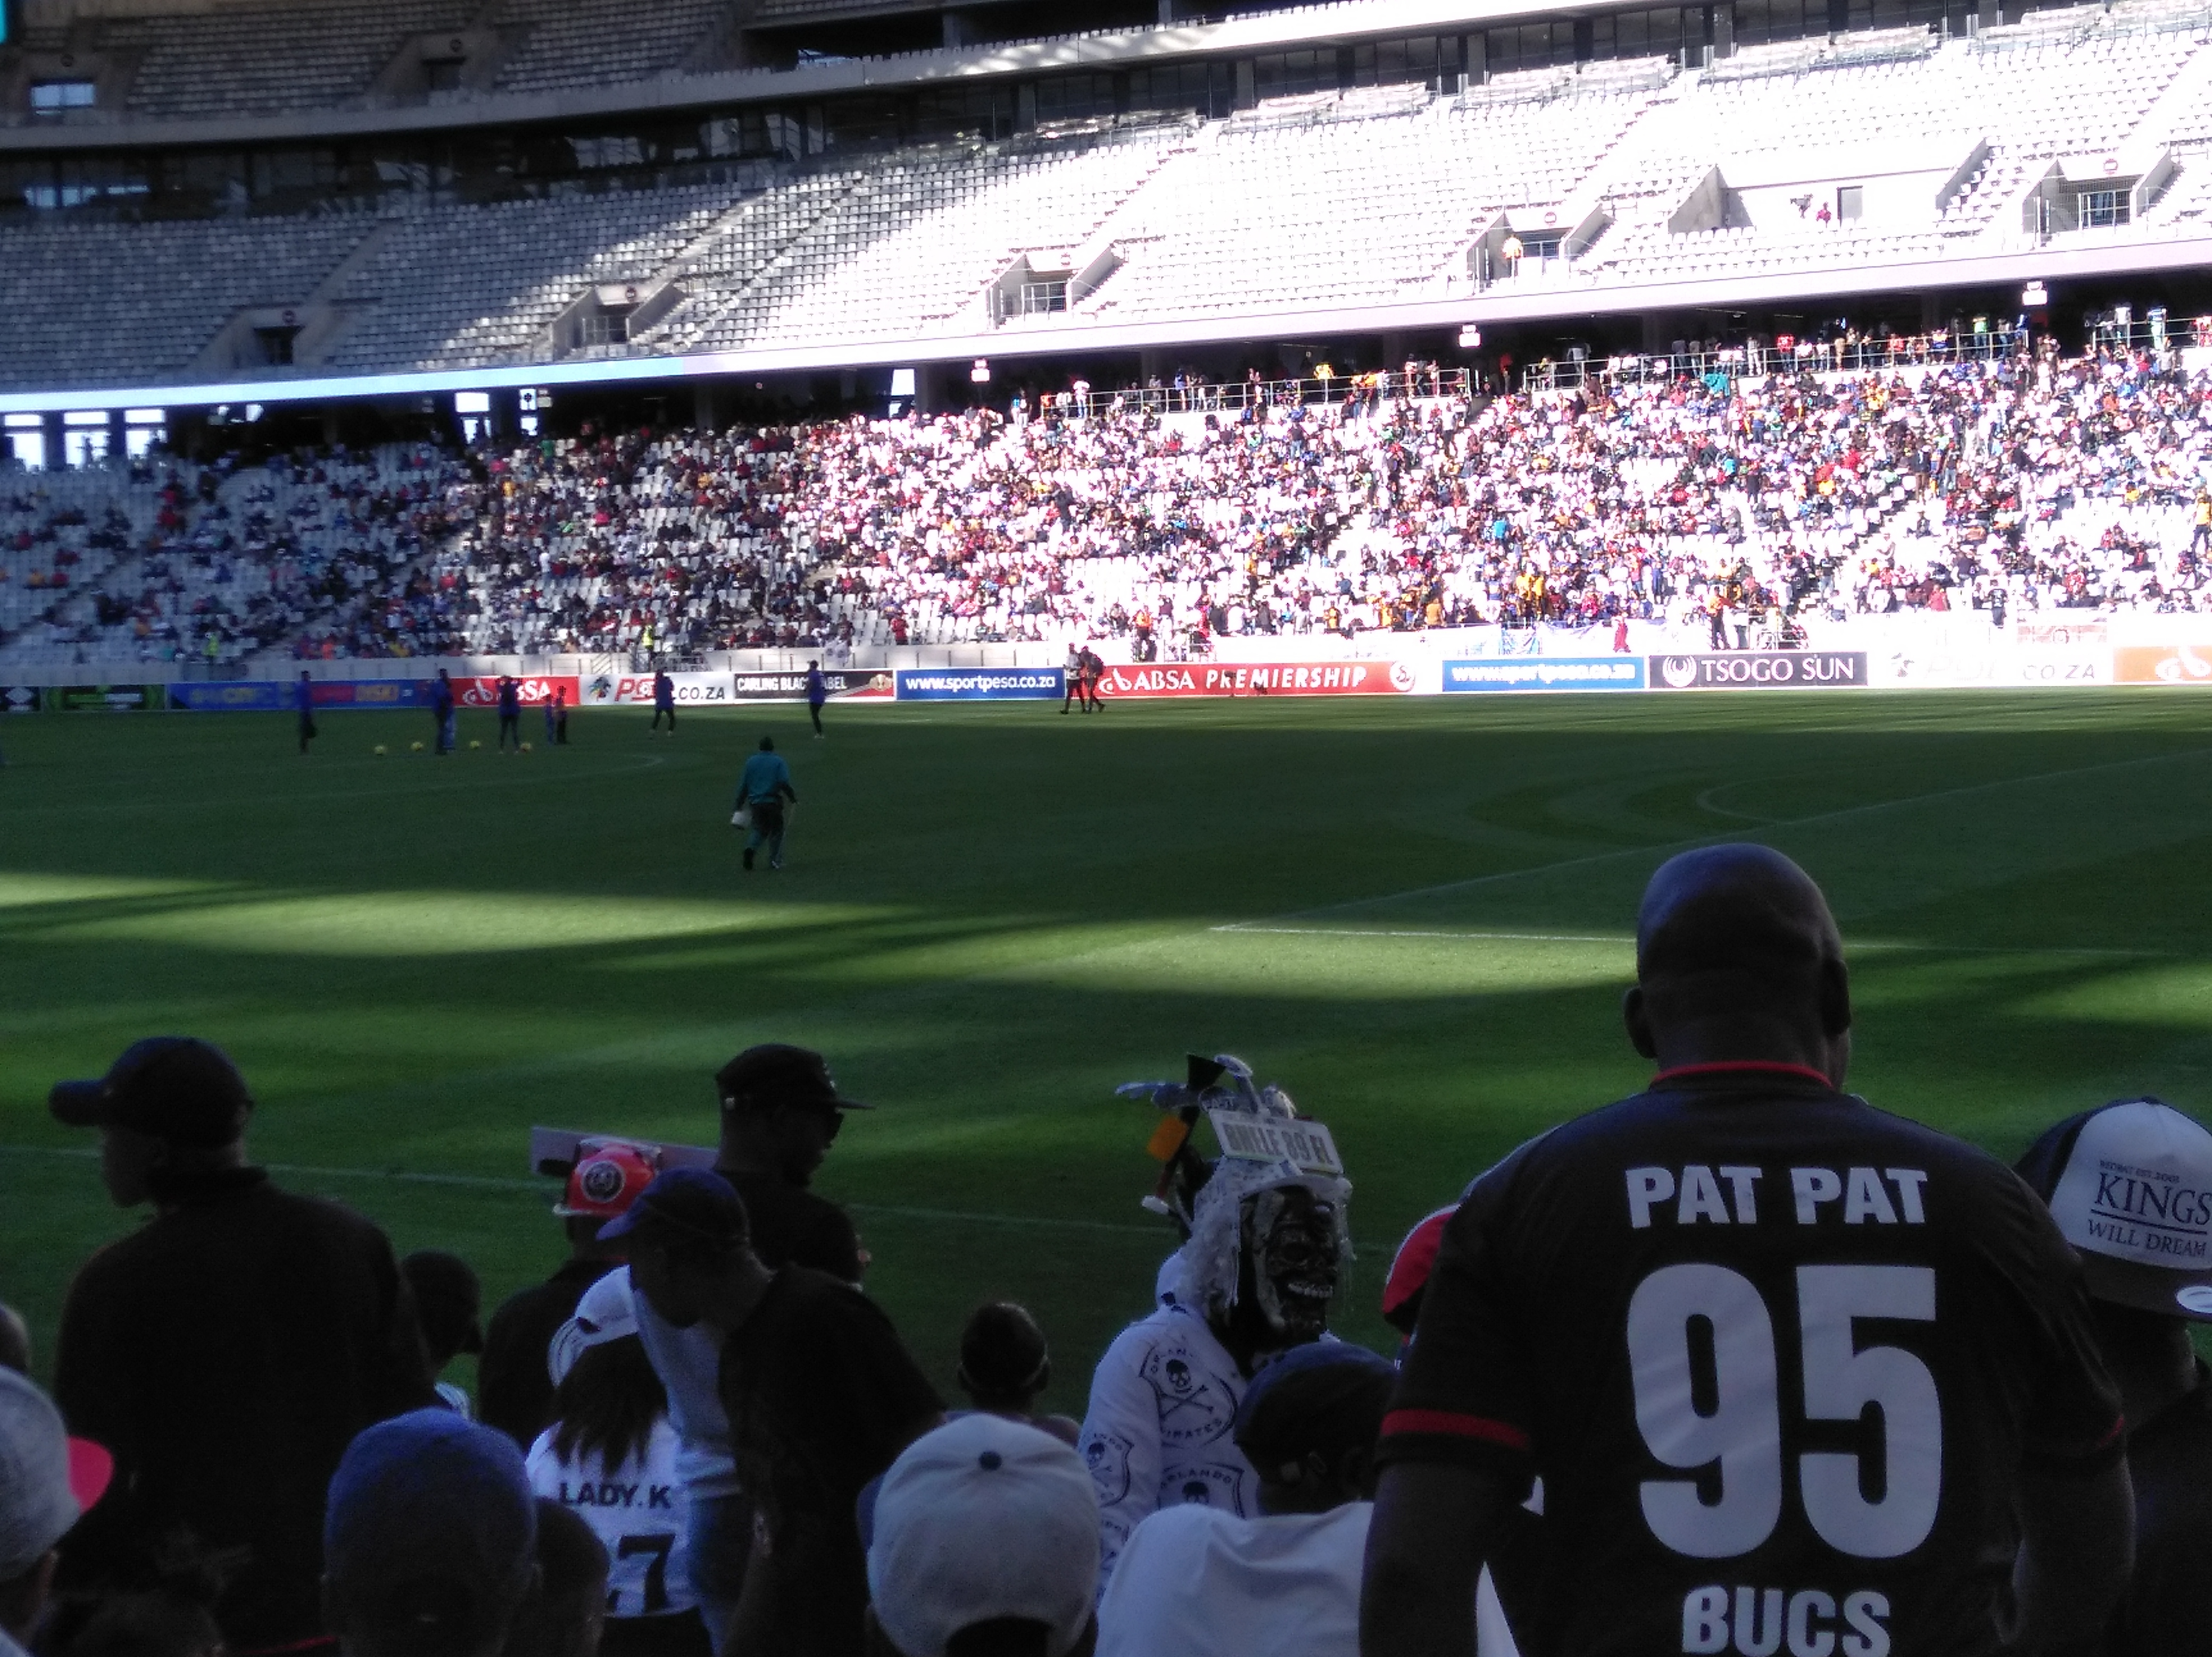 Soccer fans at Cape Town Stadium